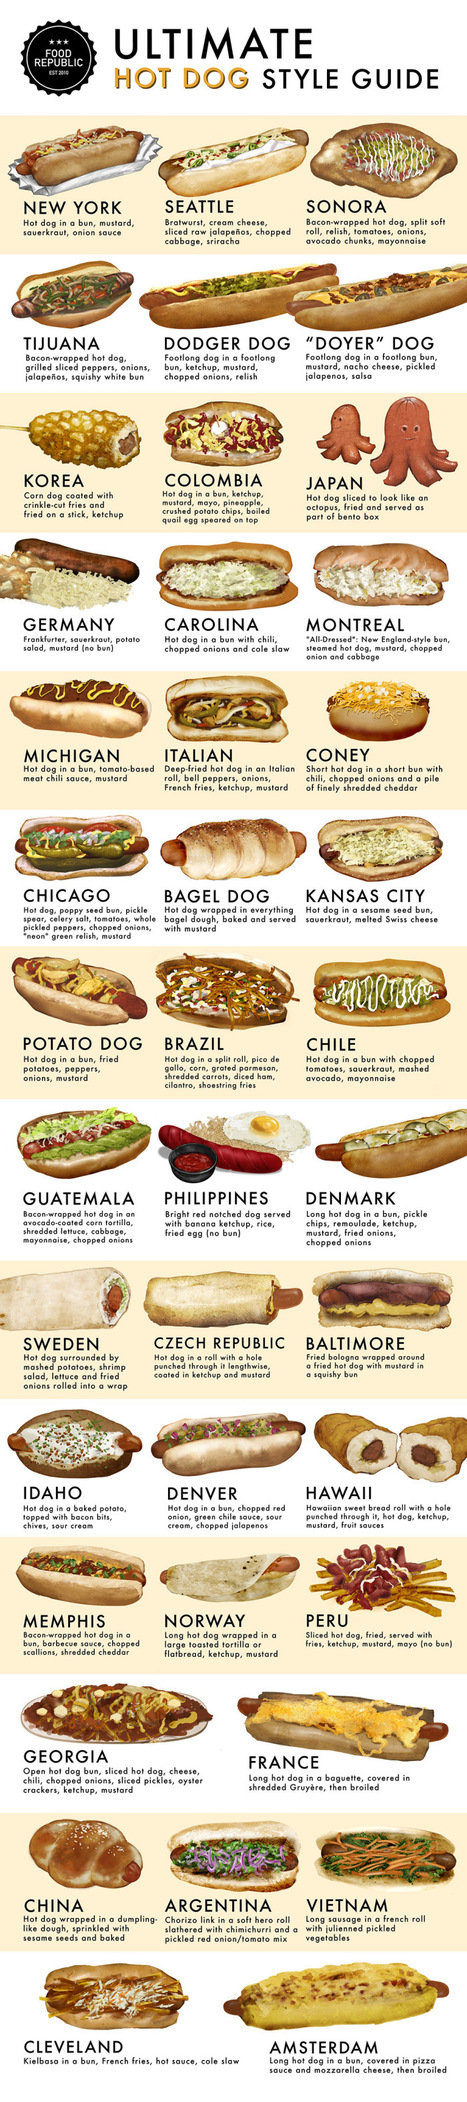 40 Ways The World Makes Awesome Hot Dogs | AP Human Geography Education | Scoop.it